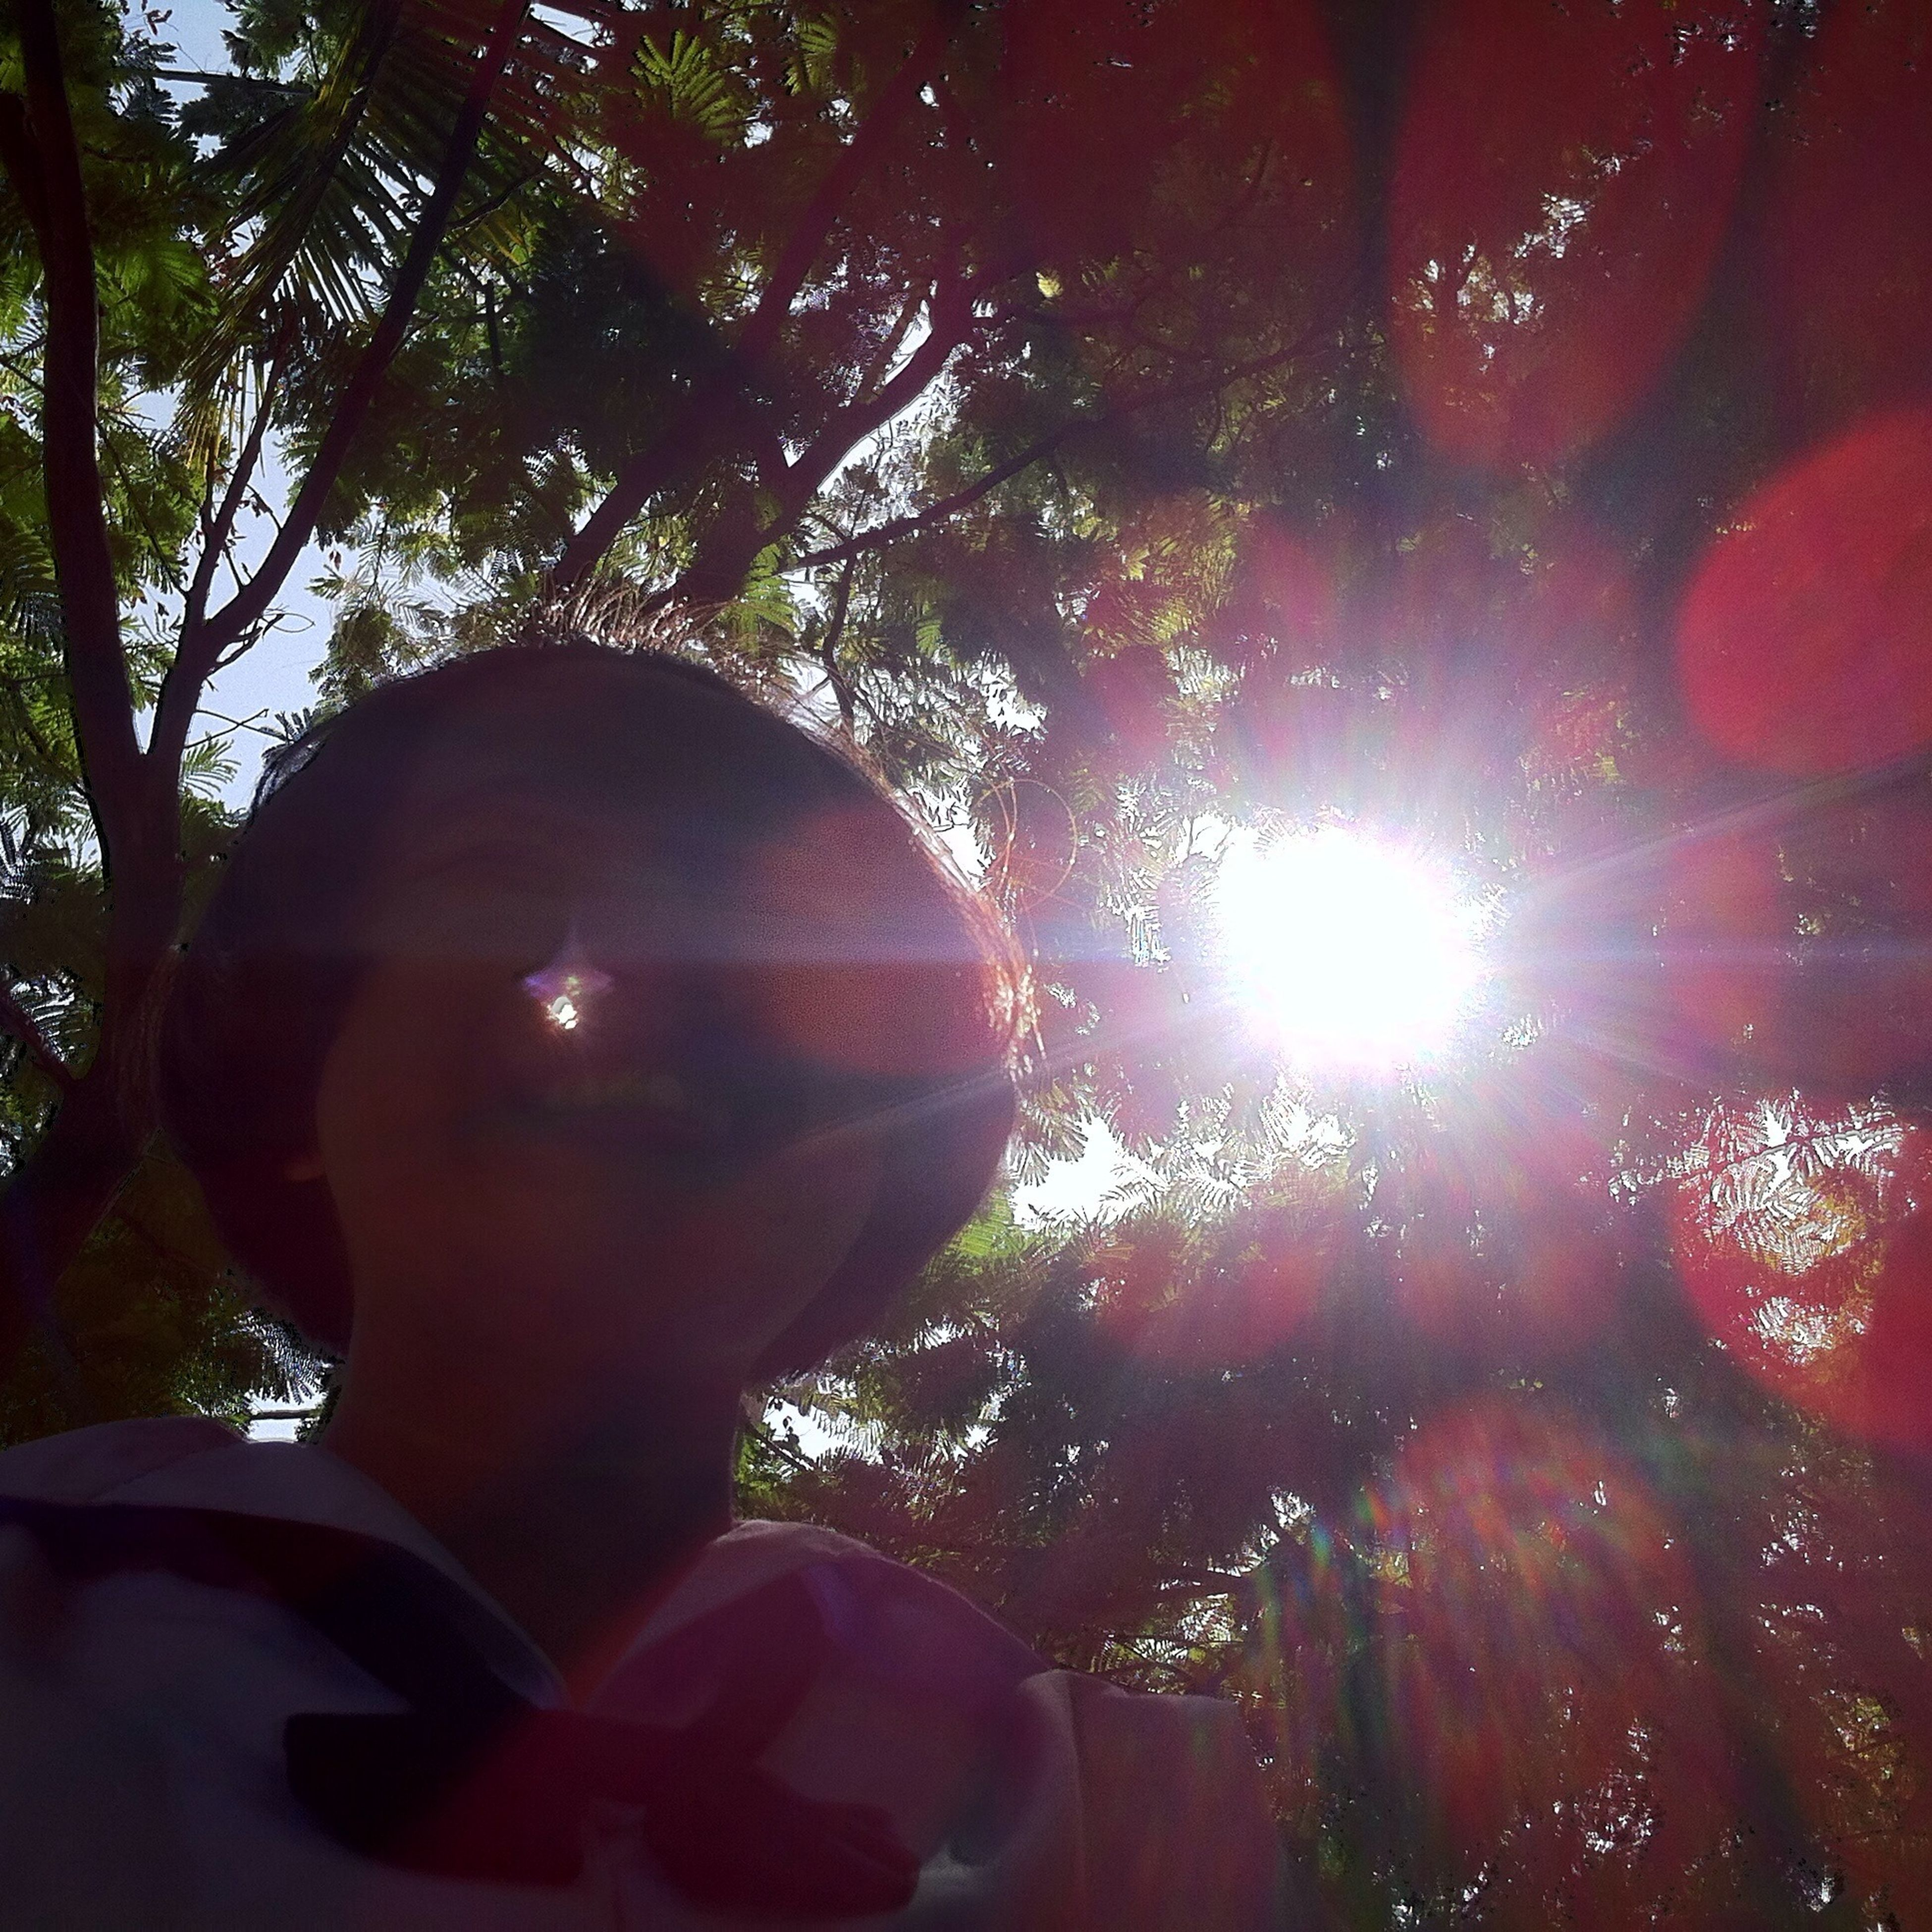 tree, lifestyles, leisure activity, person, holding, lens flare, sun, sunlight, men, sunbeam, personal perspective, unrecognizable person, part of, low angle view, headshot, cropped, sky